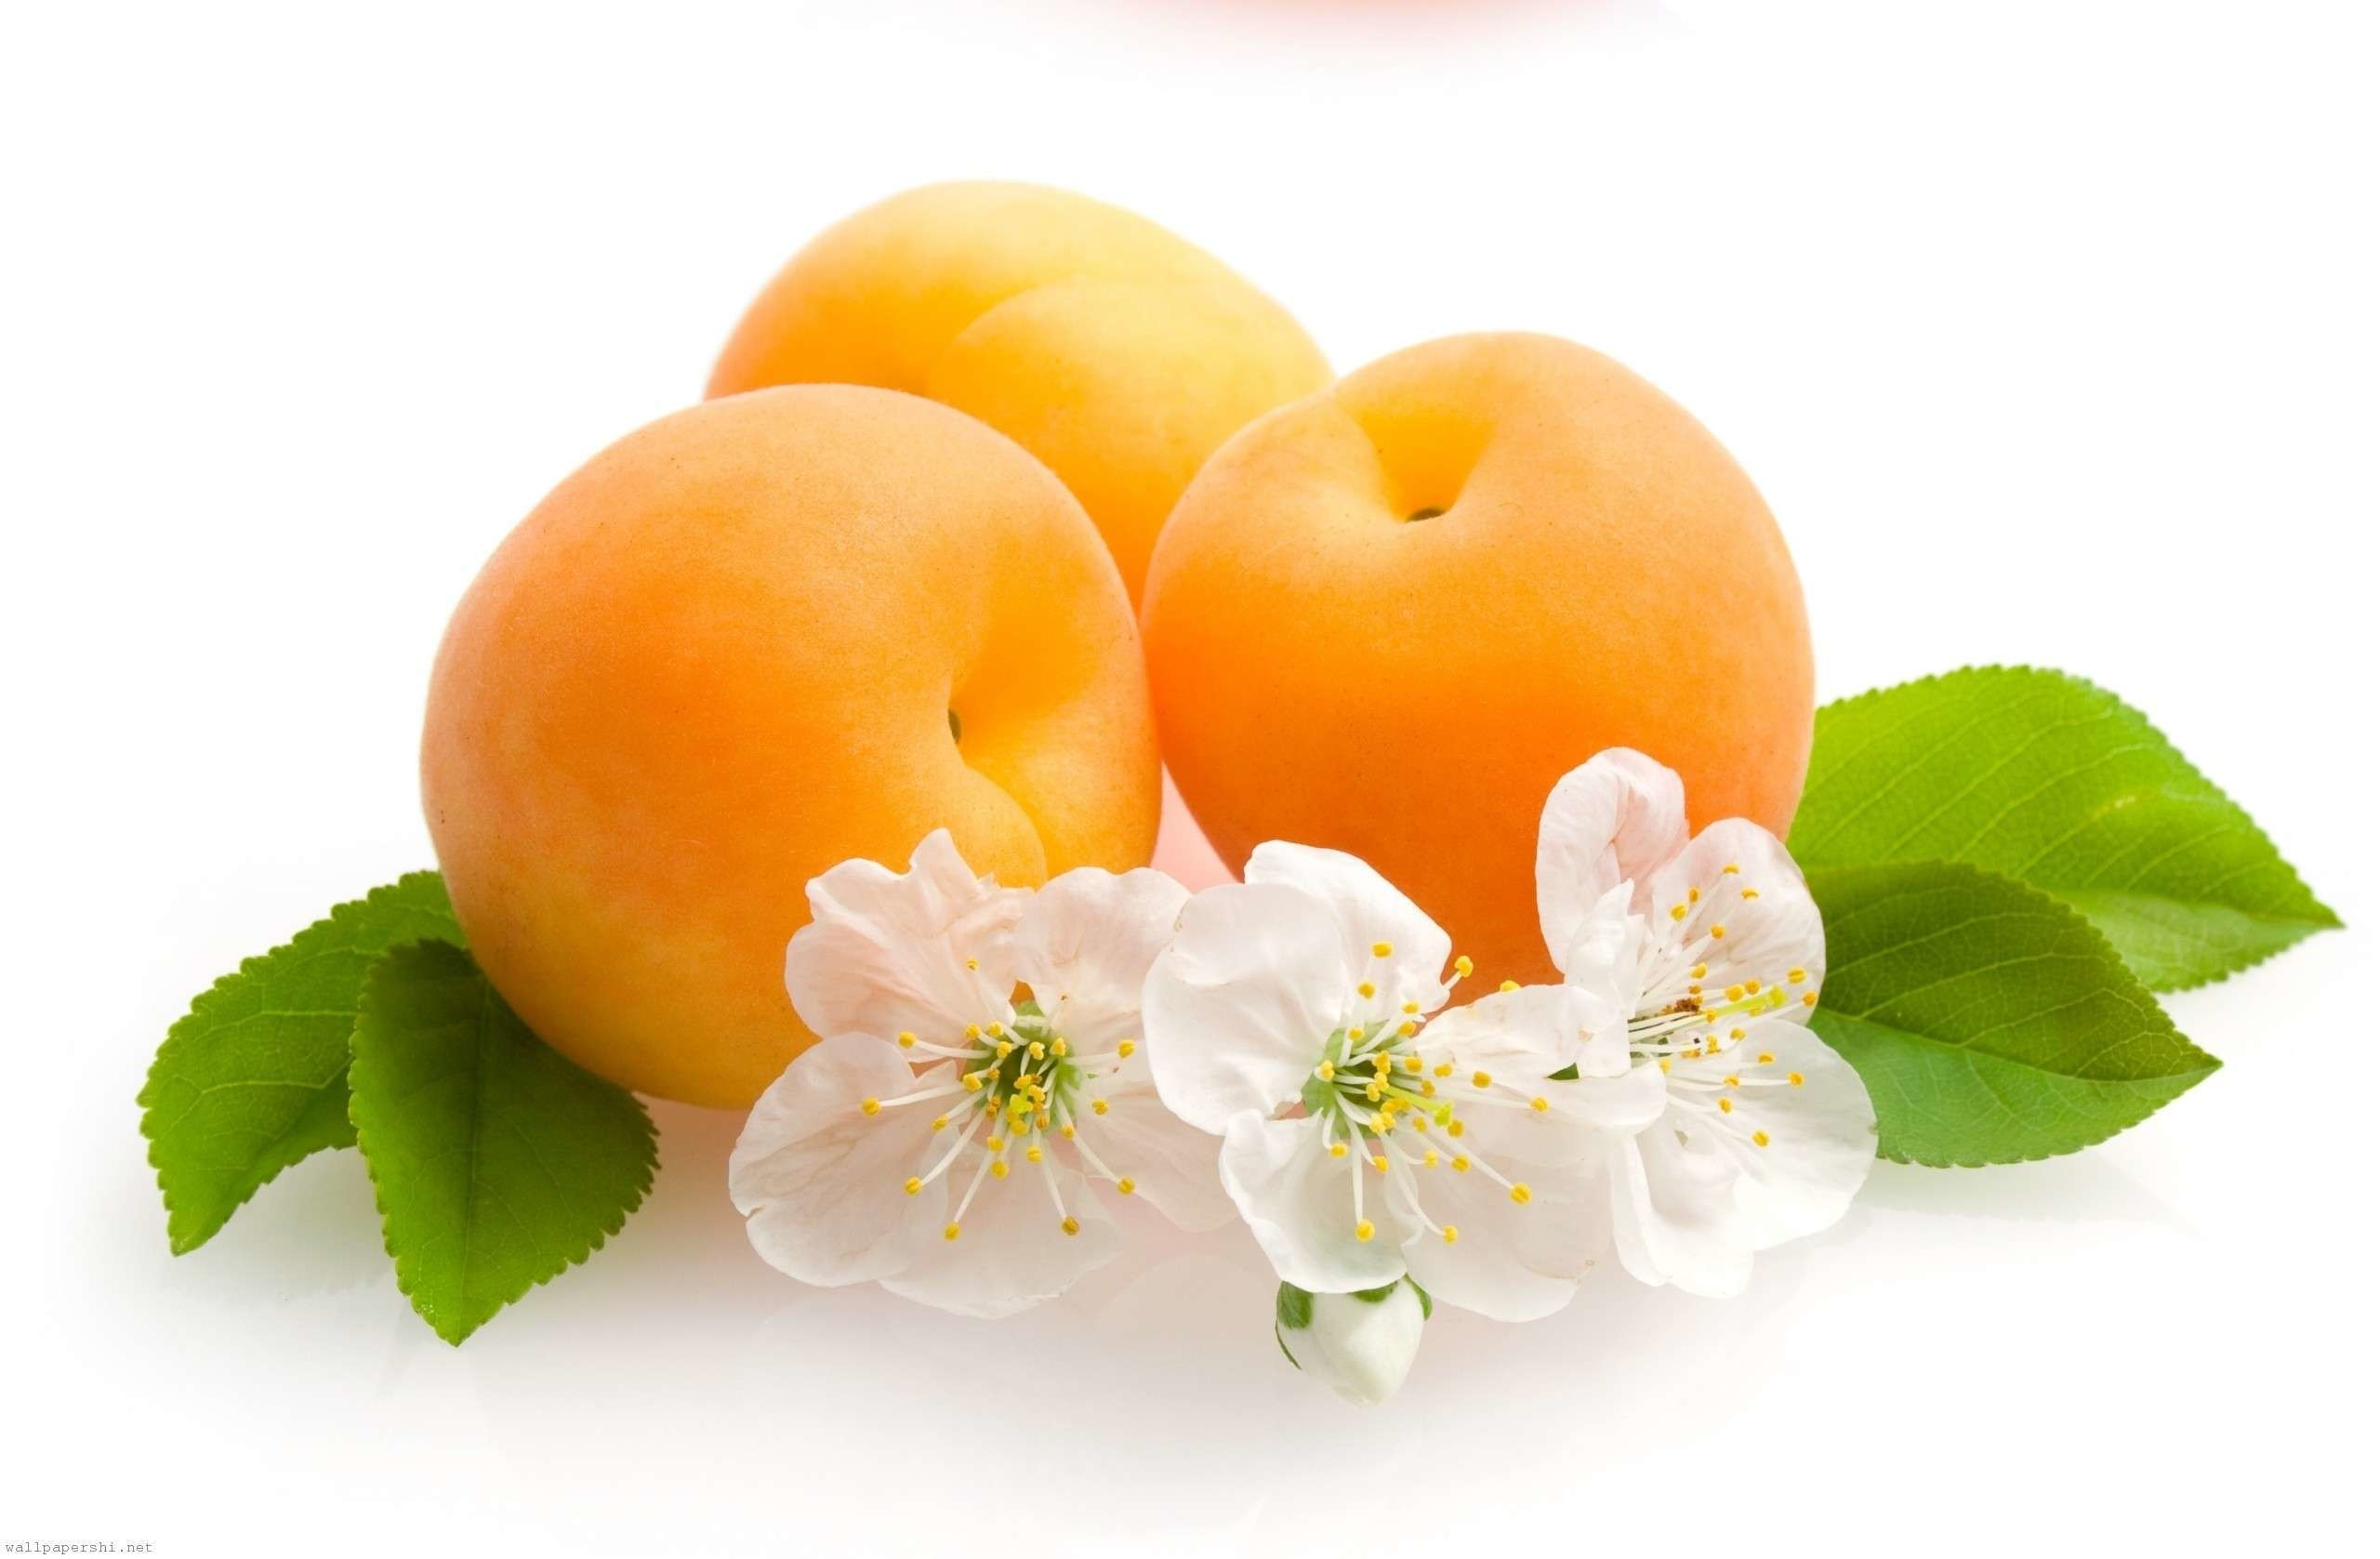 Apricot Fruit Wallpaper HD Desktop Images